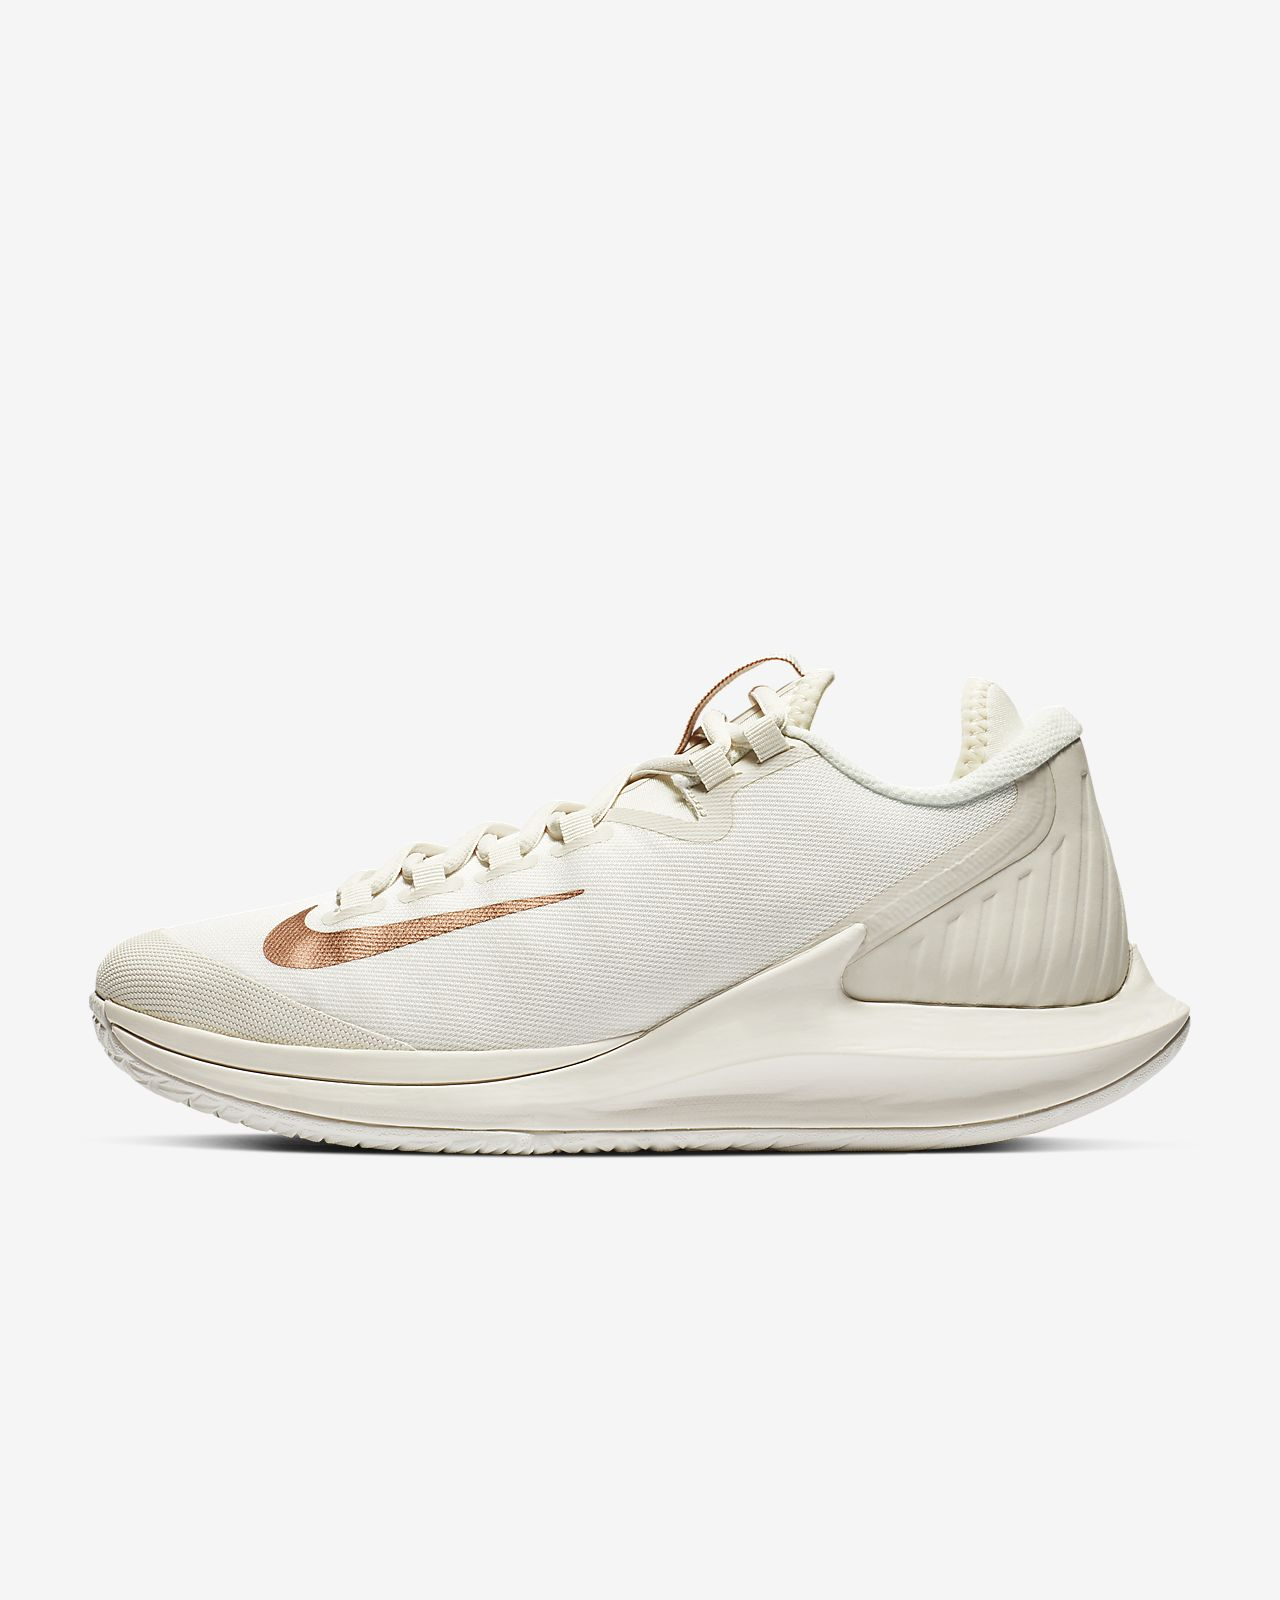 NikeCourt Air Zoom Zero Women s Hard Court Tennis Shoe. Nike.com AE 85424d85b2fb